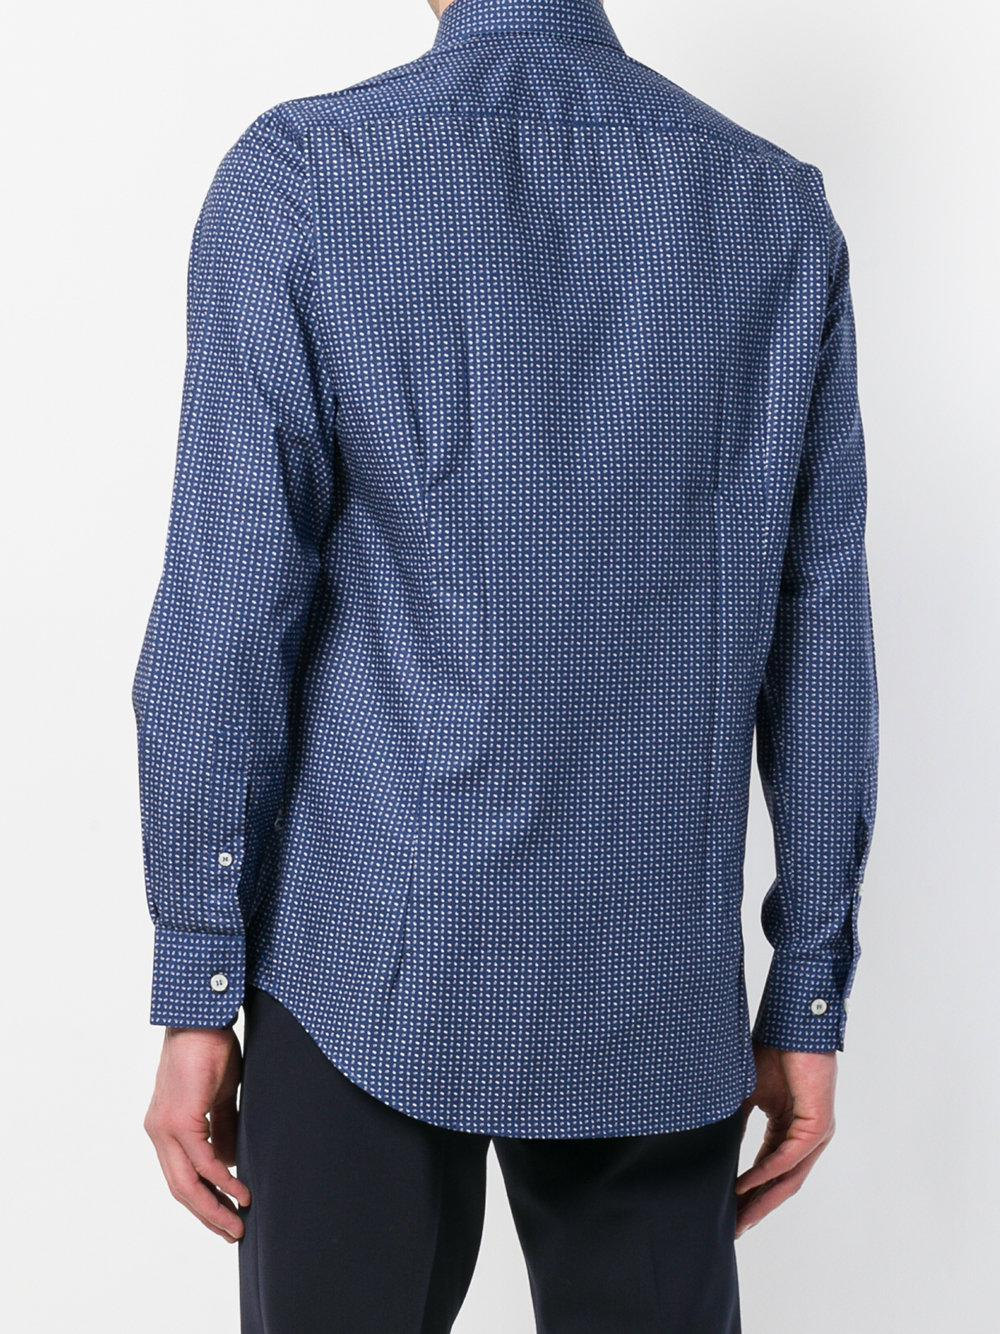 patterned style shirt - Blue Etro Cheap Sale Cheap New Cheap Price Buy Online With Paypal 5uoFho